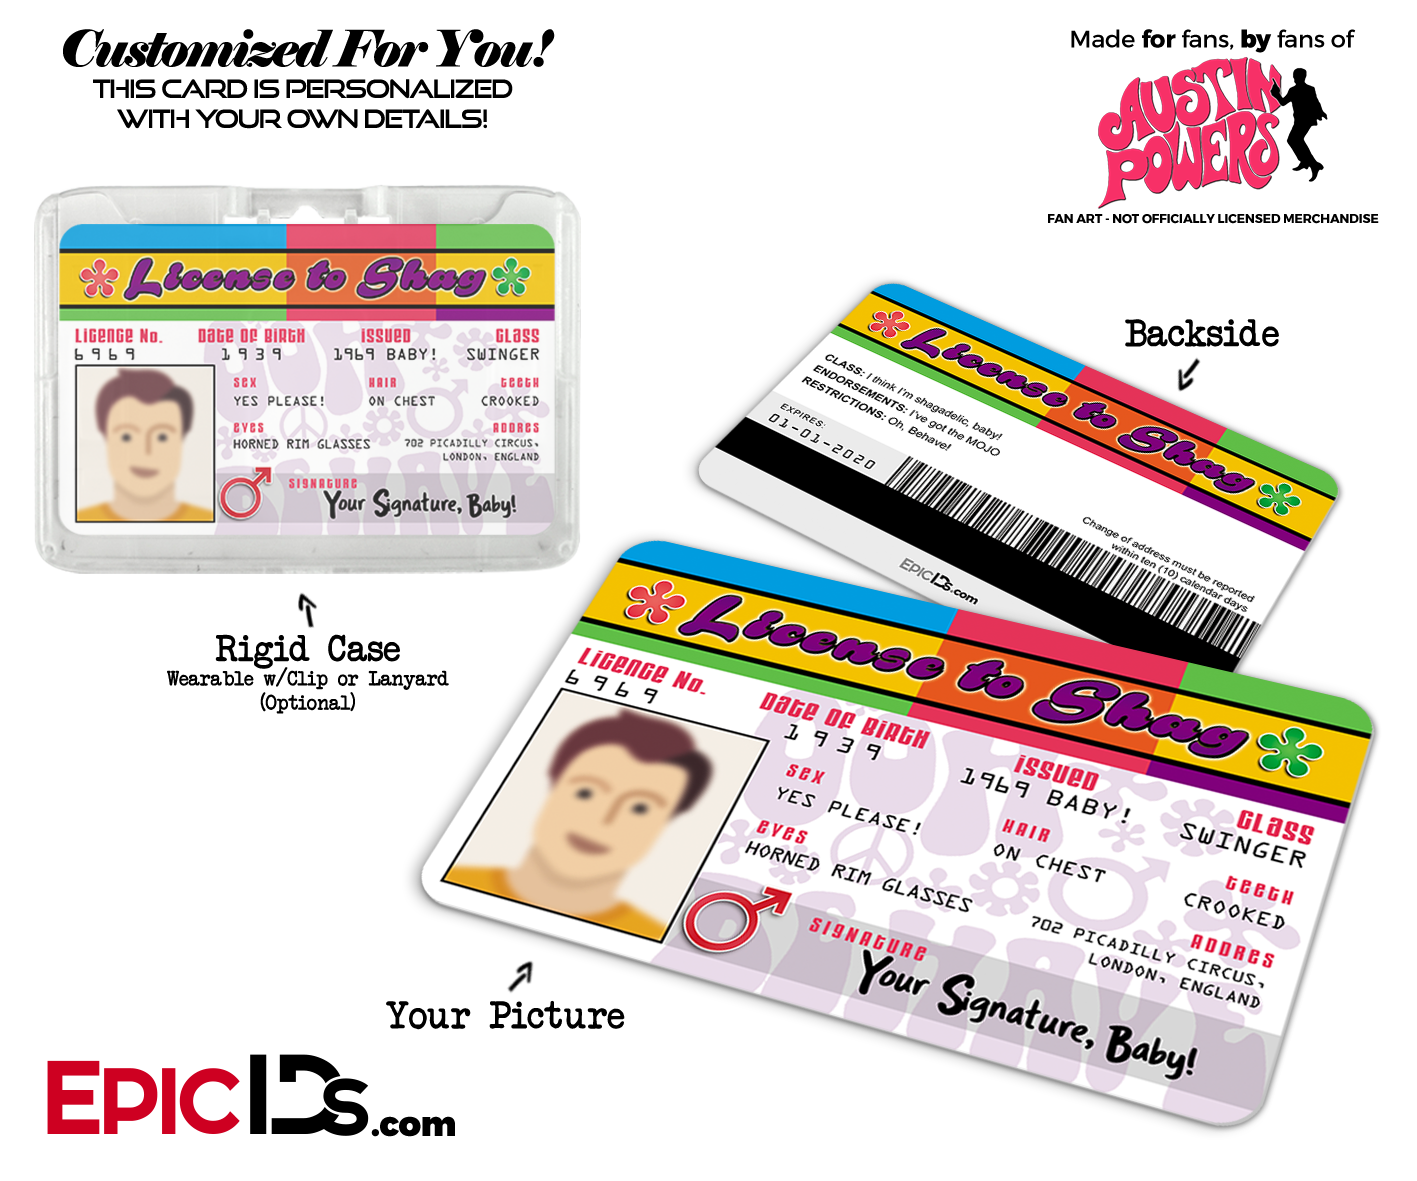 Shag Card photo Cosplay Novelty To - Epic Powers' Persona Ids Id 'austin License